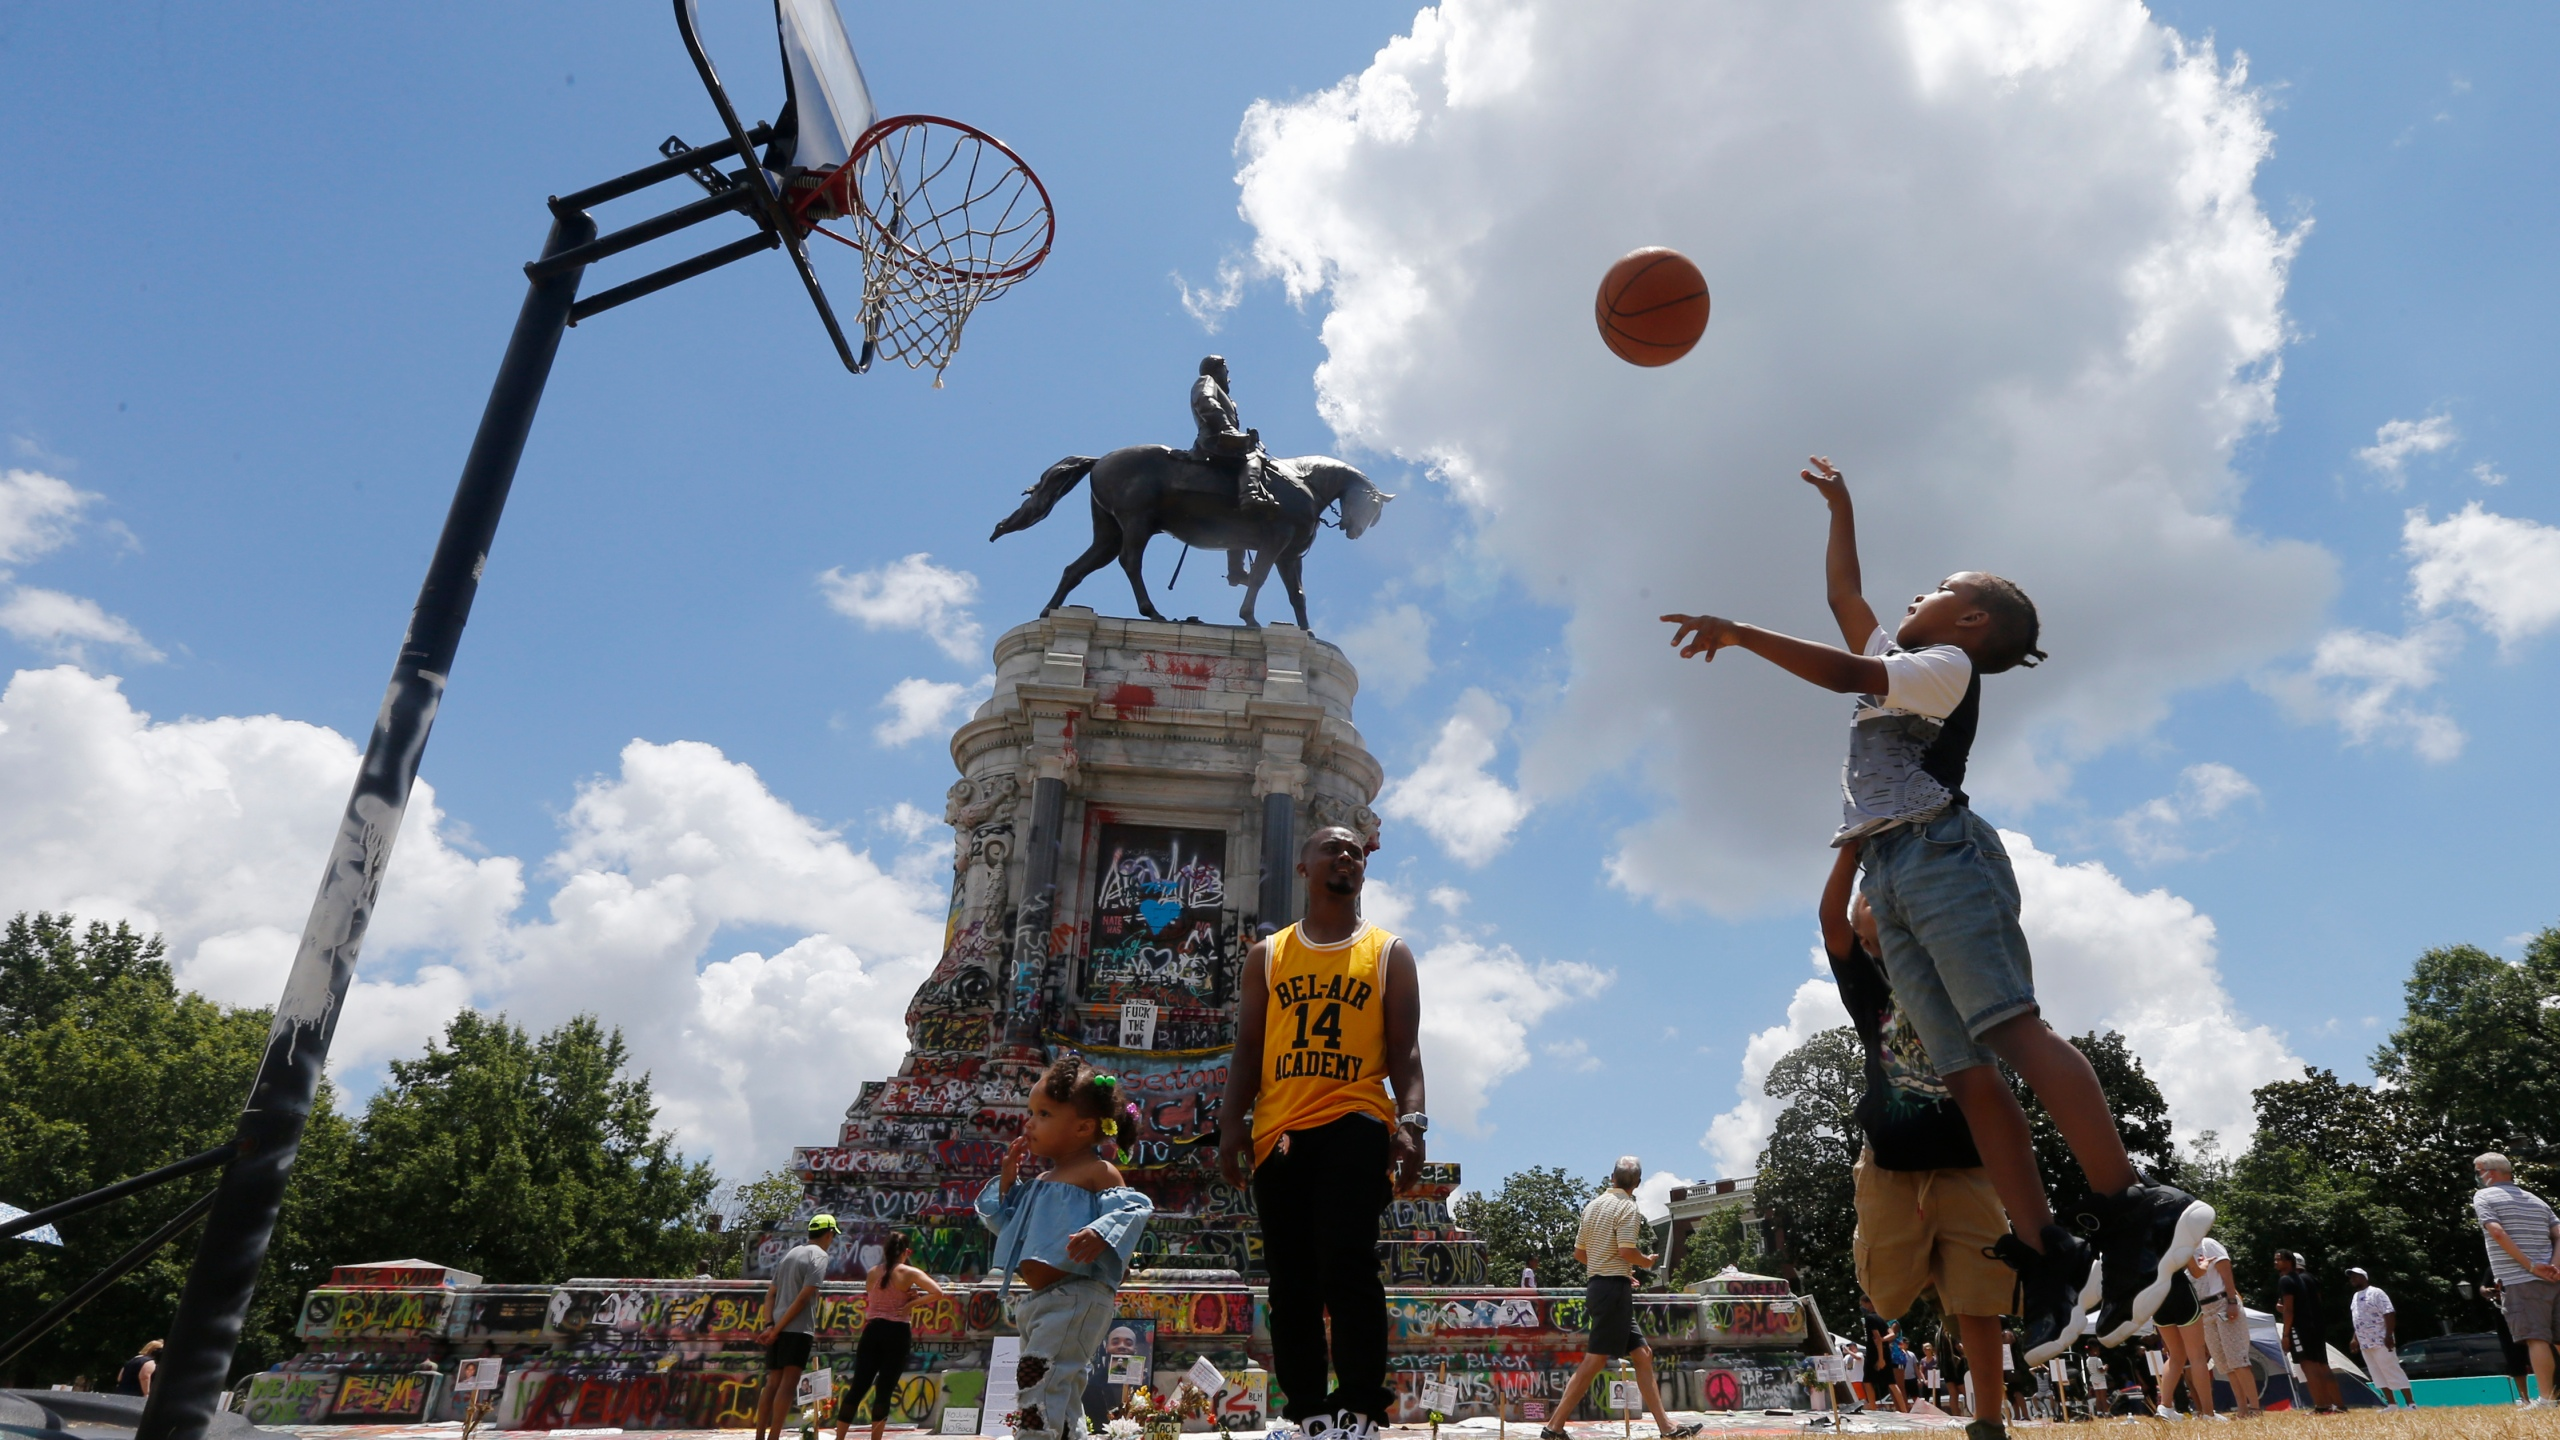 Isaiah Bowen, right, takes a shot as his dad, Garth Bowen, center, looks on at a basketball hoop in front of the statue of Confederate General Robert E. Lee on Monument Avenue